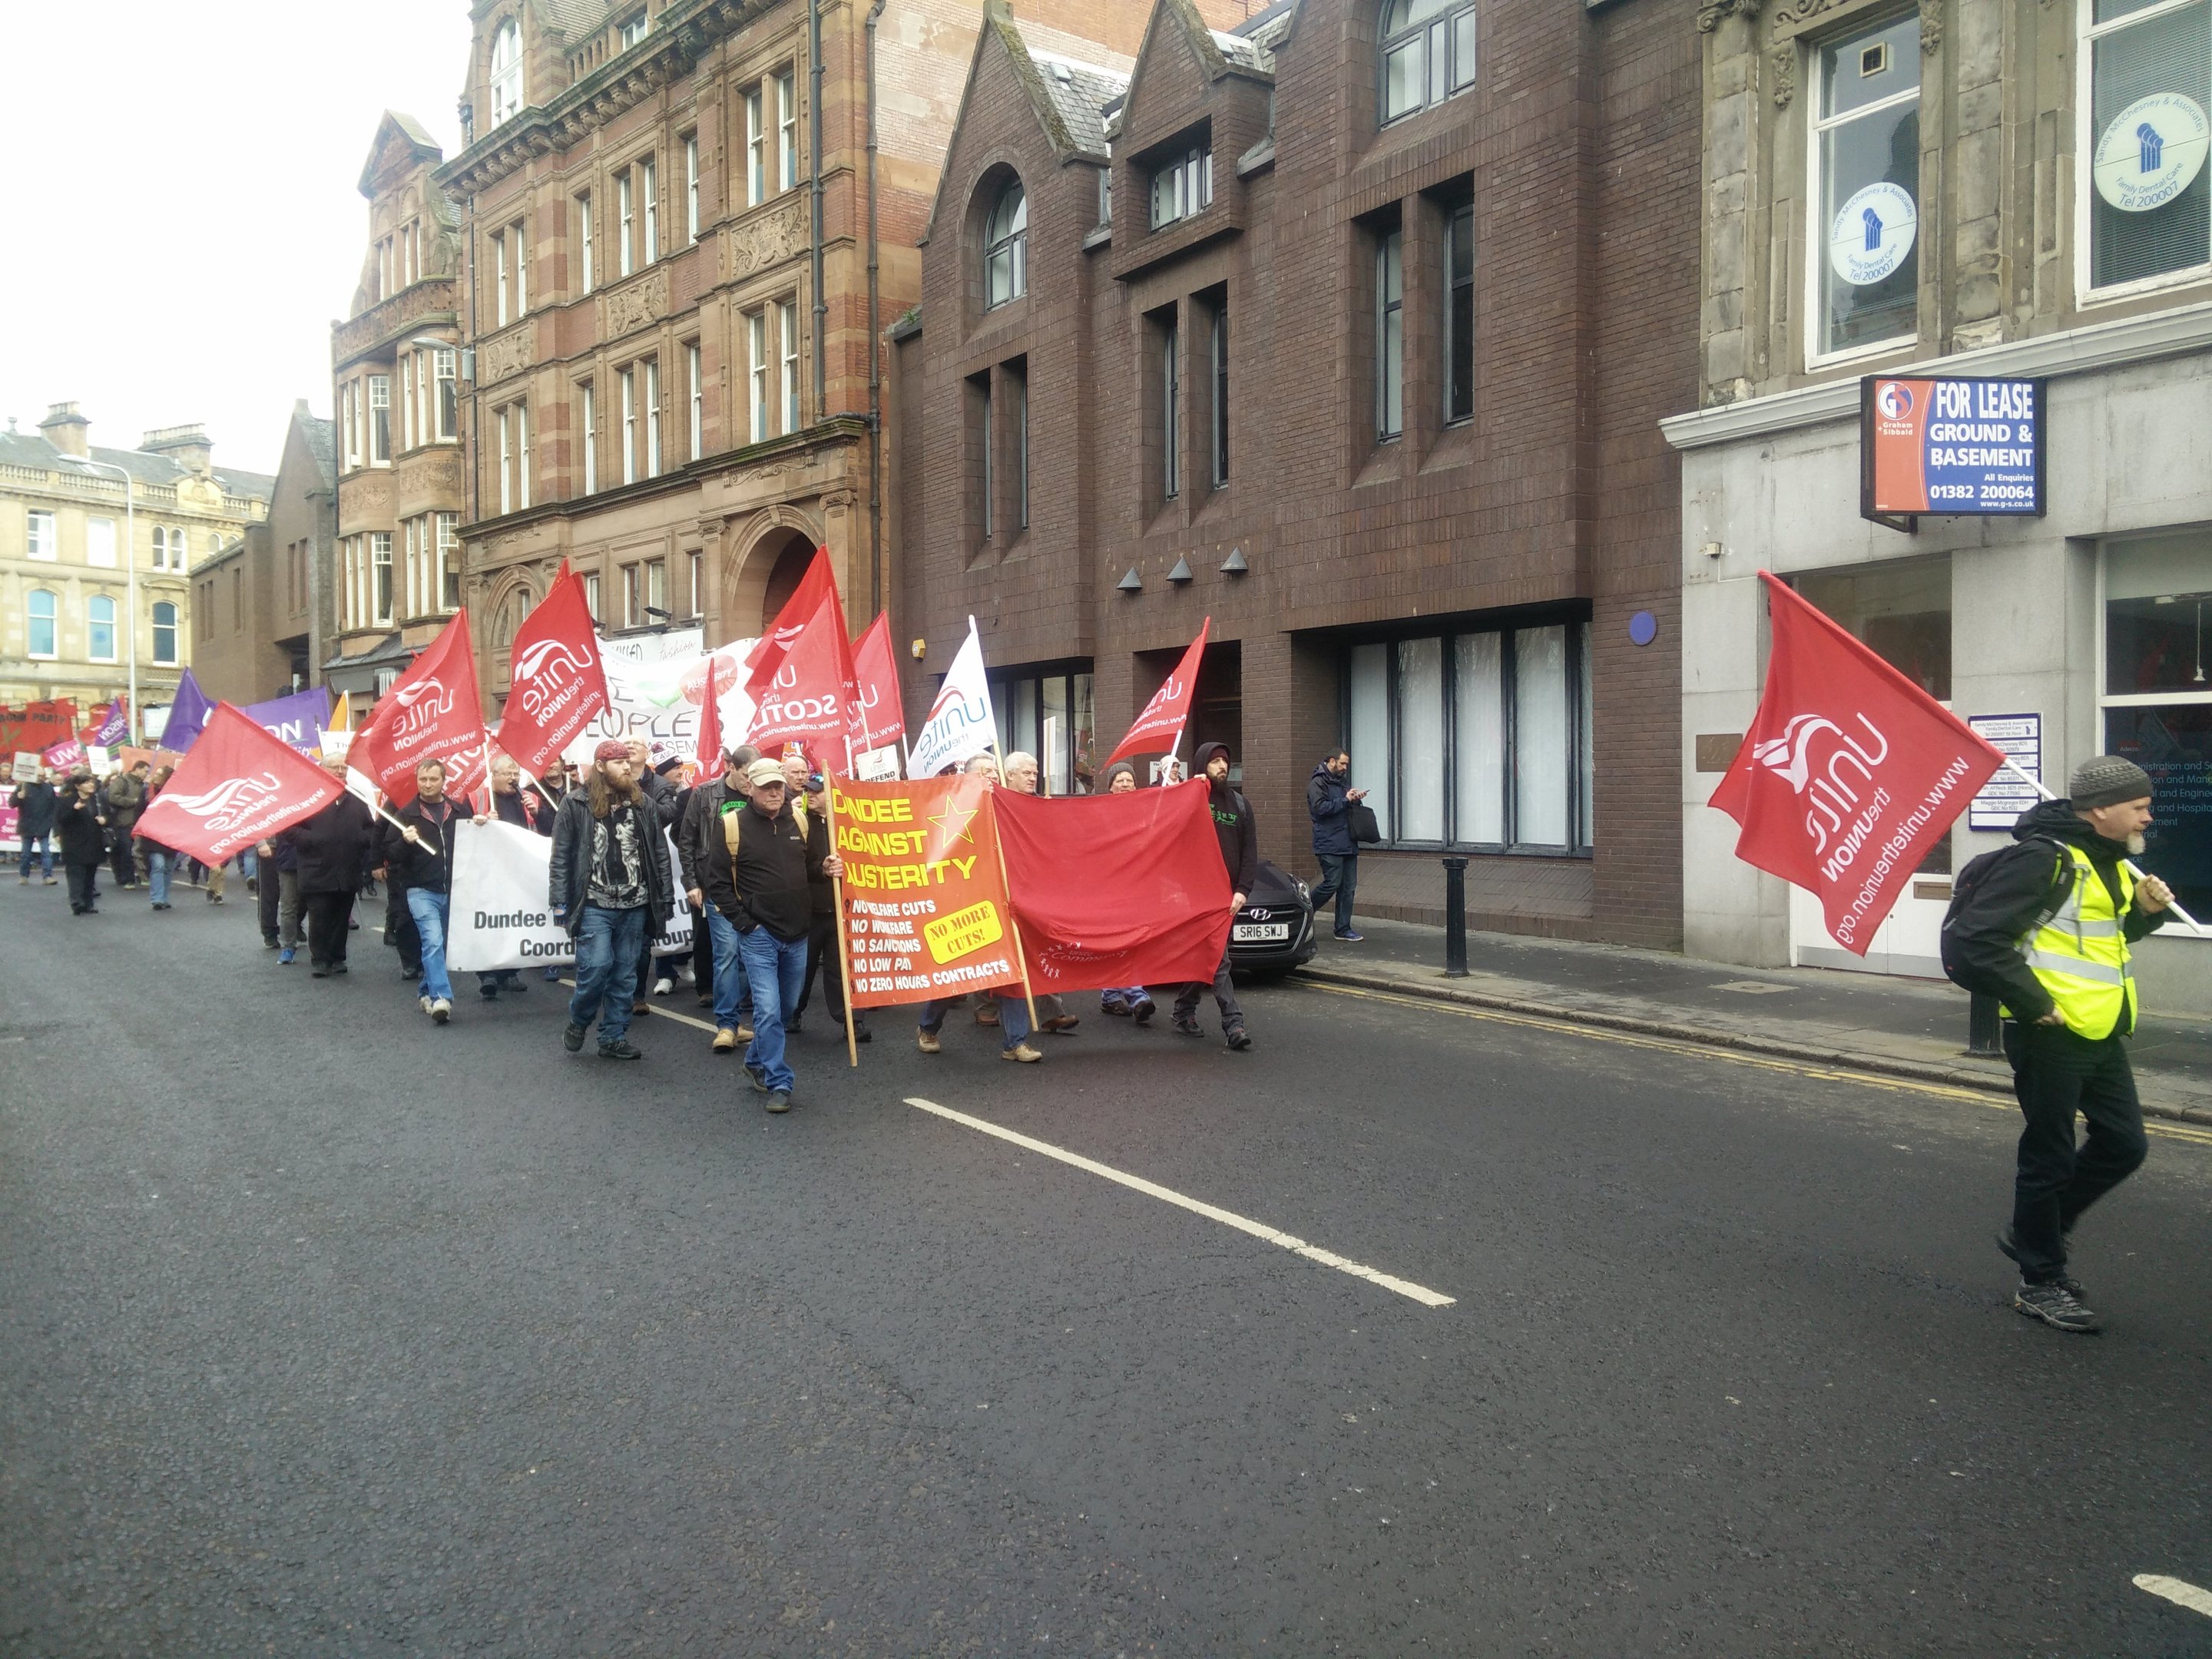 Around 100 people took part in the march